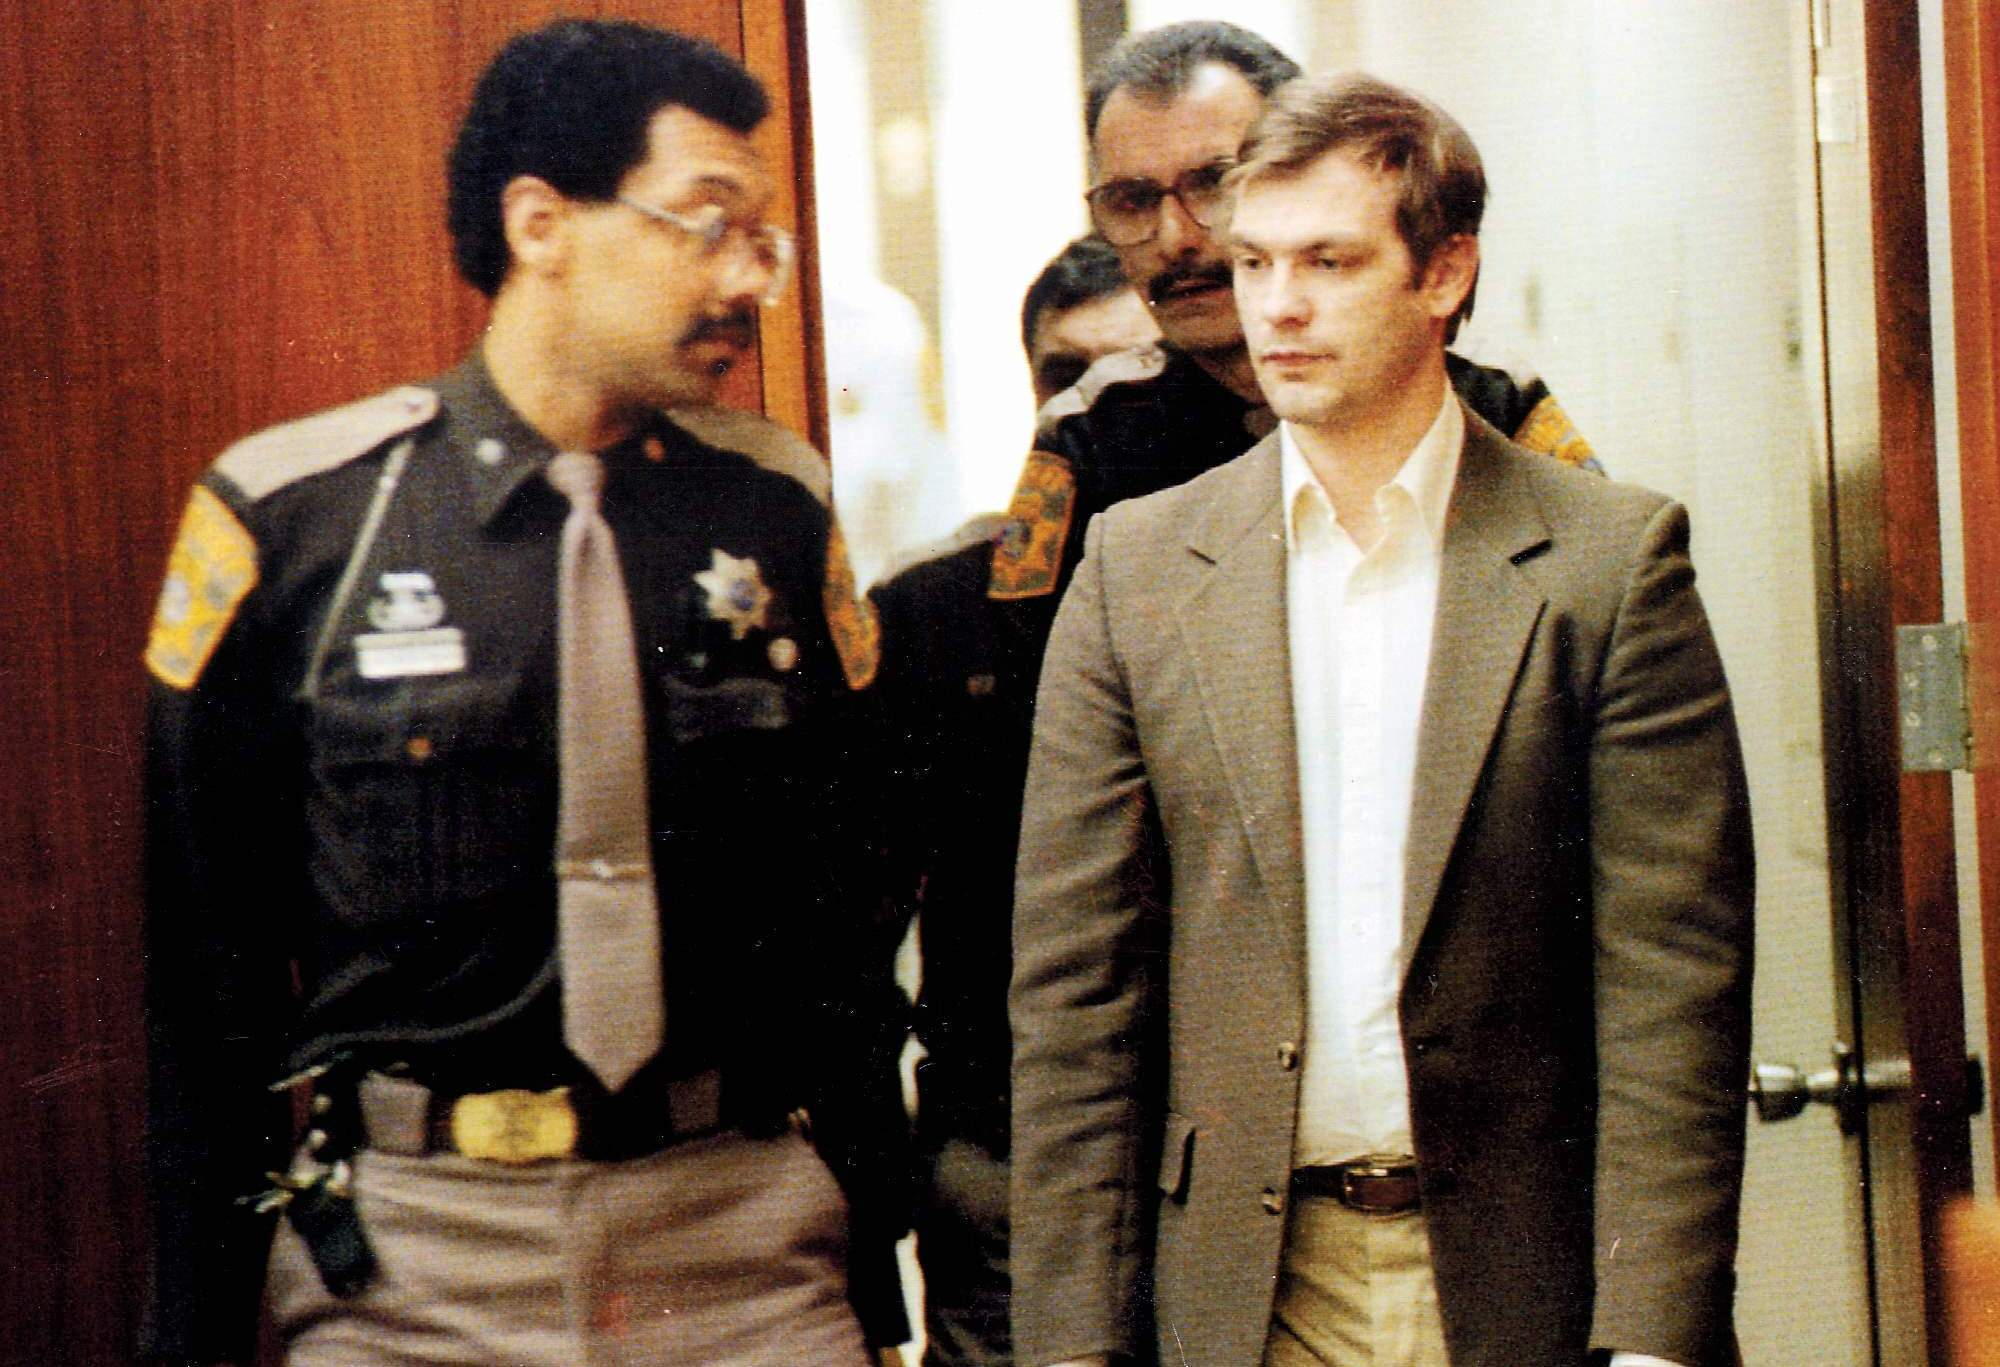 jeffrey-dahmer-serial-killerjpg-5897a78725dc71e9.jpg